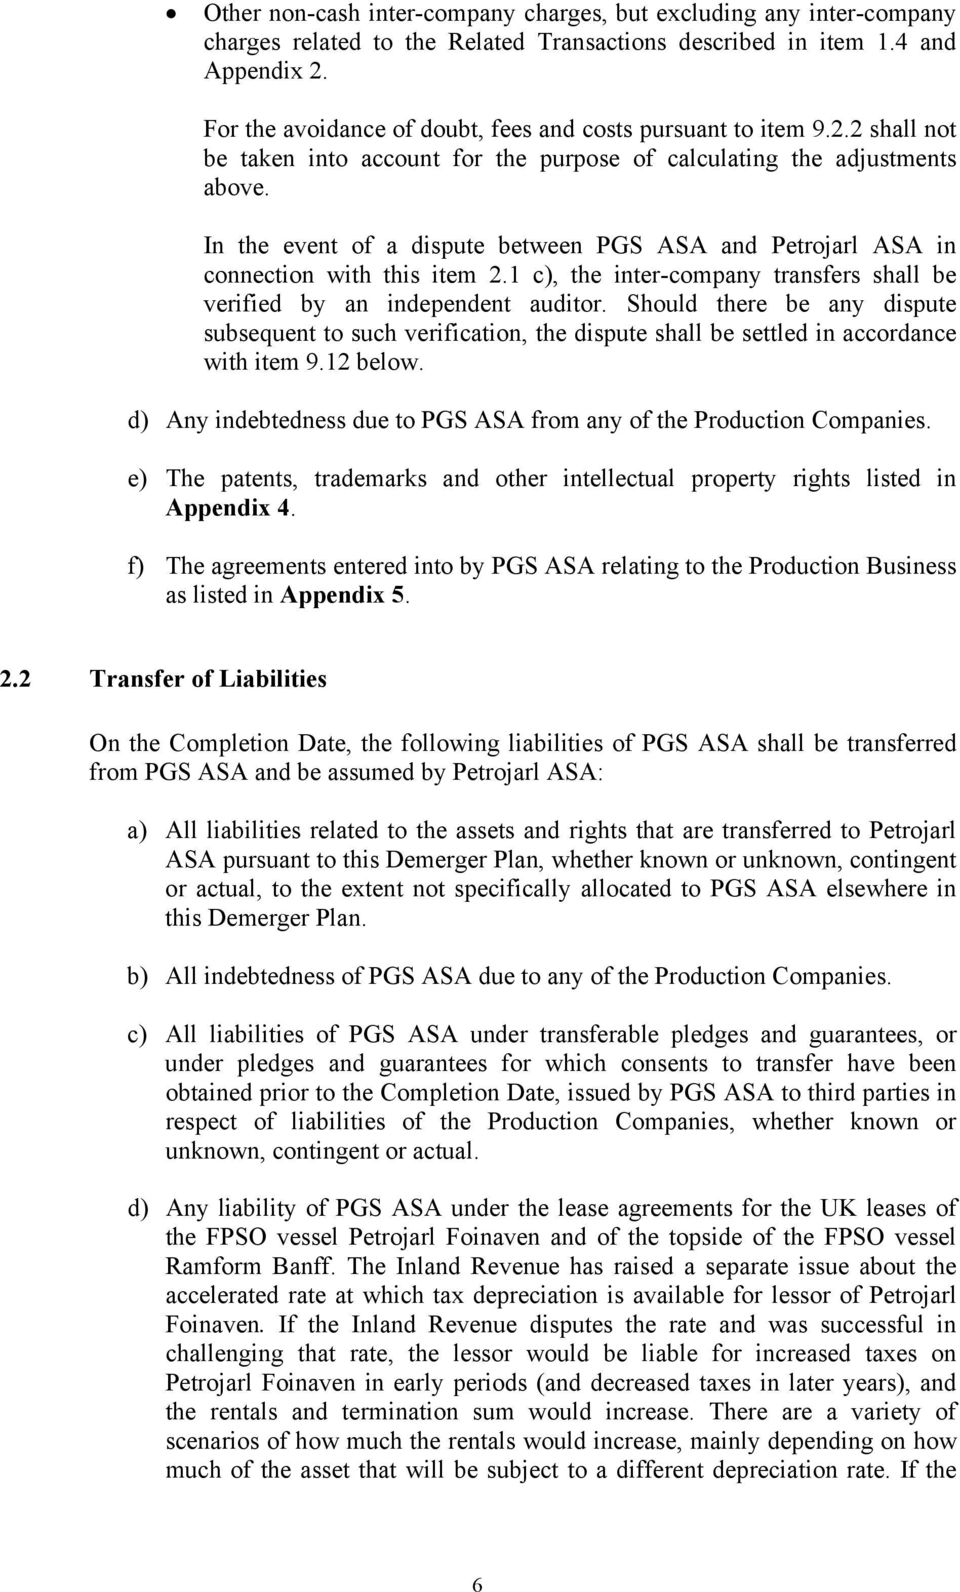 In the event of a dispute between PGS ASA and Petrojarl ASA in connection with this item 2.1 c), the inter-company transfers shall be verified by an independent auditor.